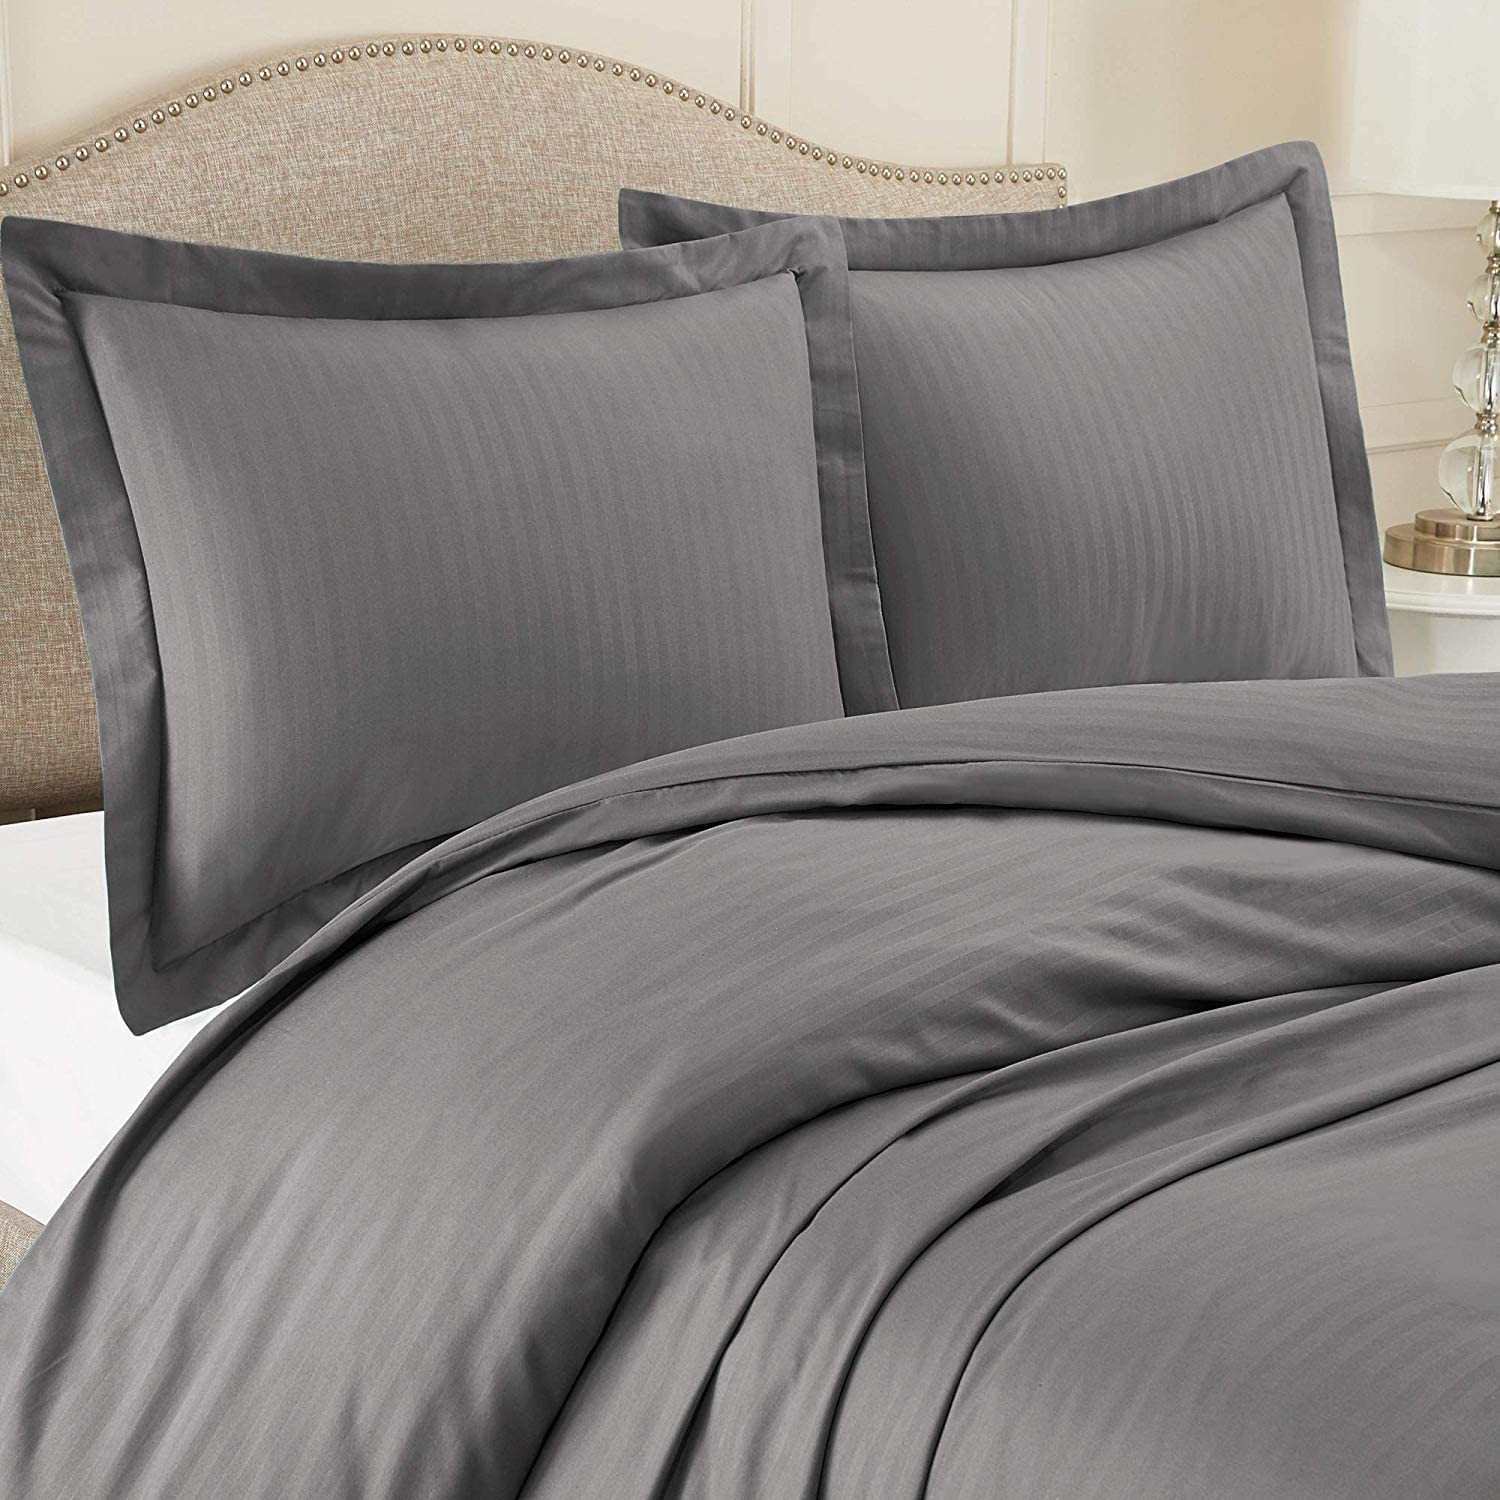 Trust Layer Max 70% OFF Luxury Duvet Cover Set 100-Percent High quality new Pillow Cotto Sham